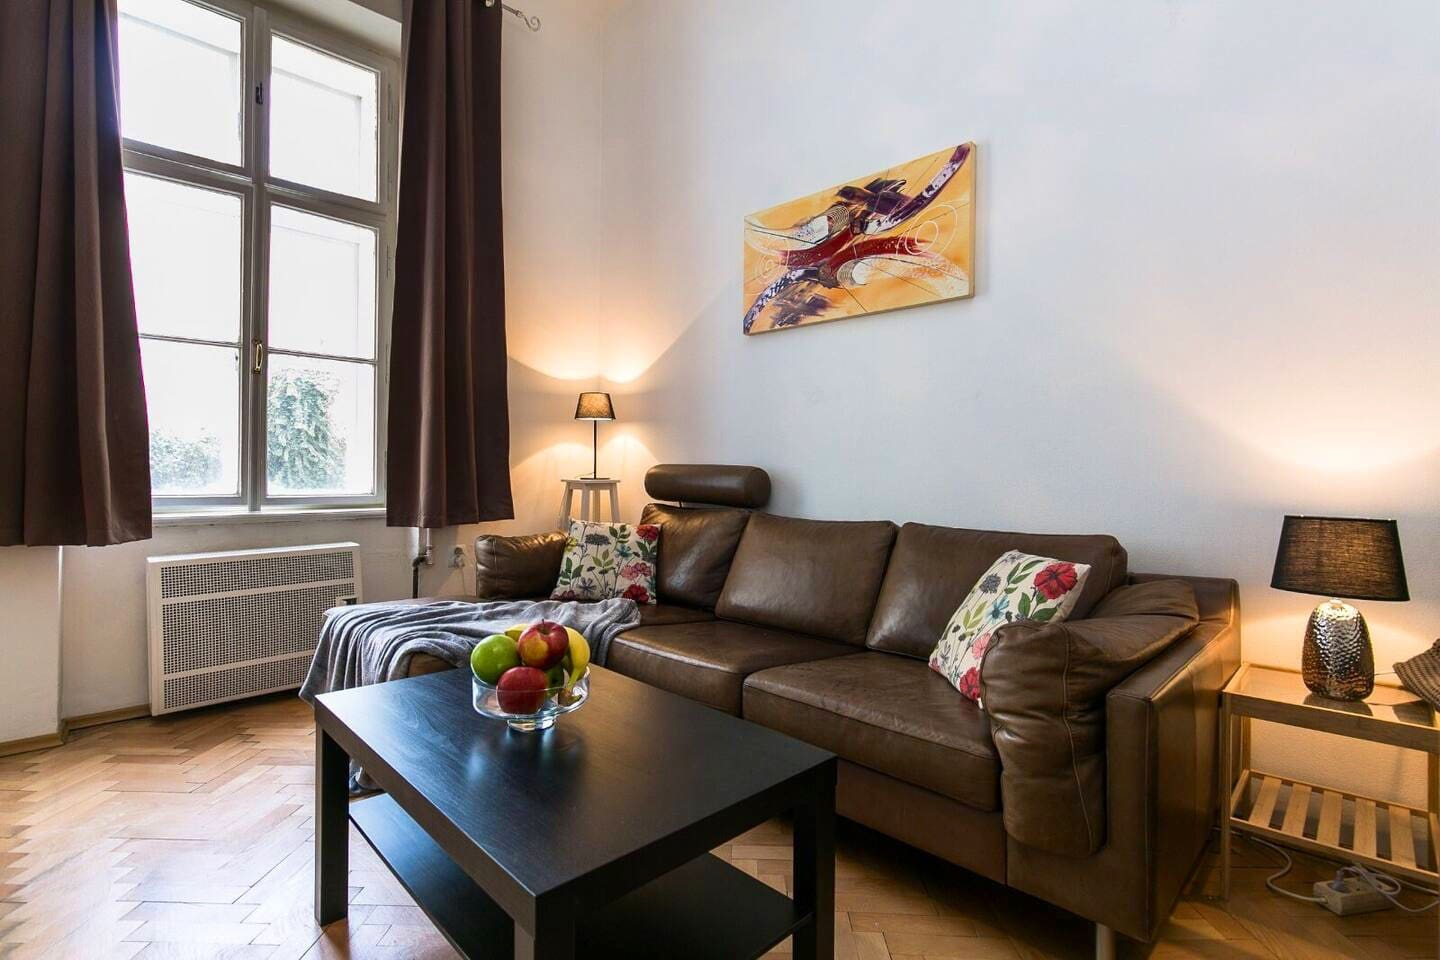 Relax in our calm and bright apartment with inner garden view in our amazing hometown Prague short stroll to historical monuments like OldTown square, Charles bridge, Municipal house